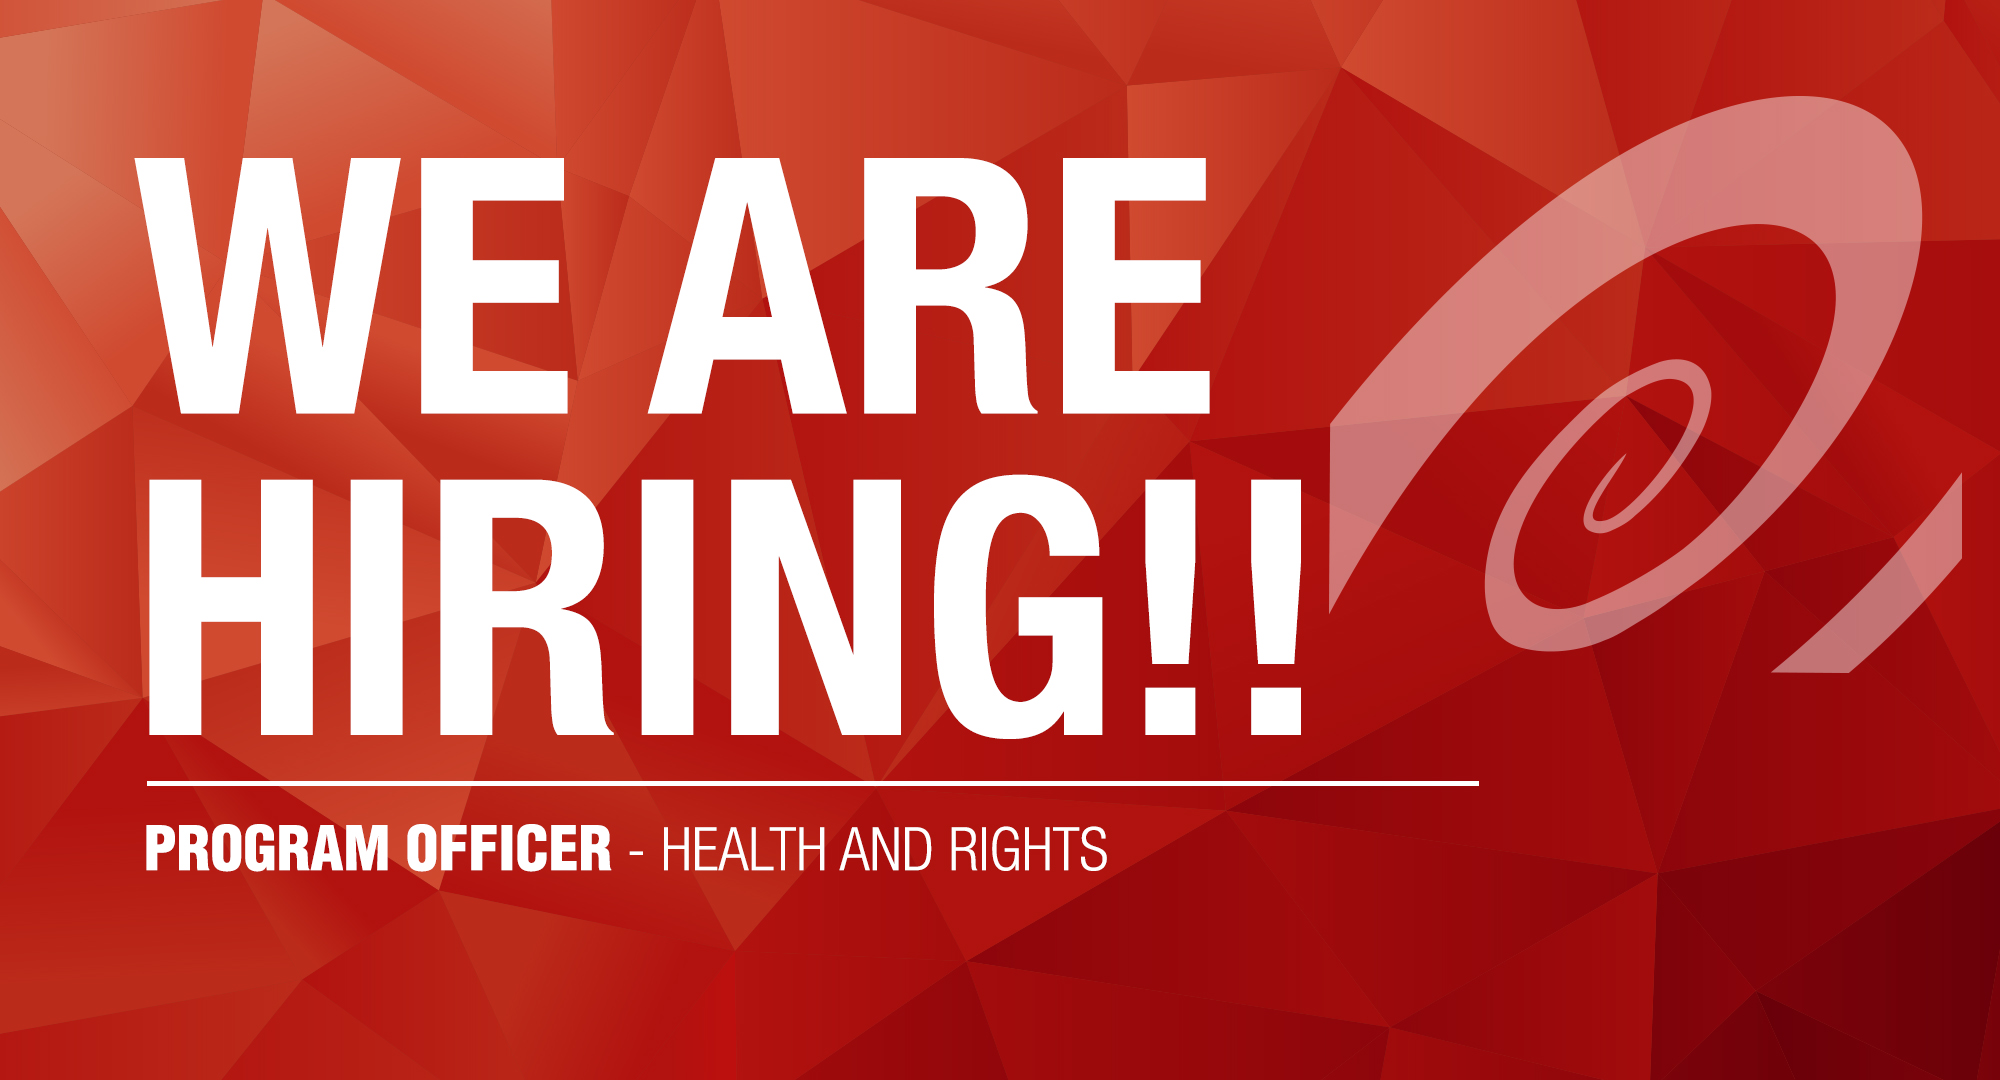 Program Officer Health And Rights